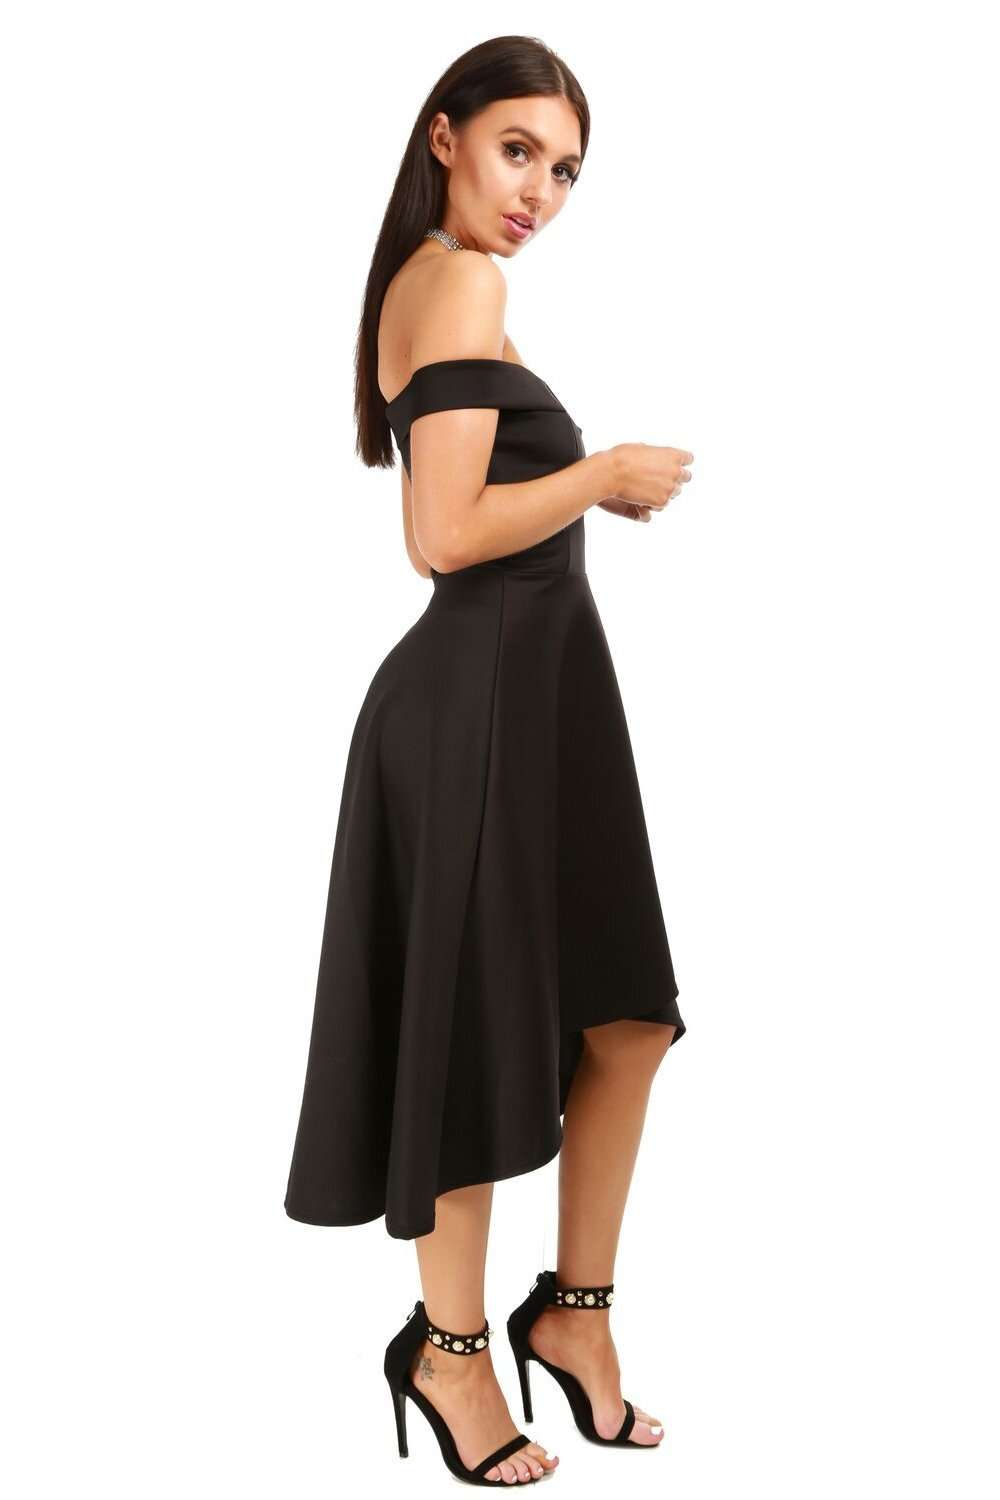 Natalia V Bar Off Shoulder Midi Swing Dress - bejealous-com